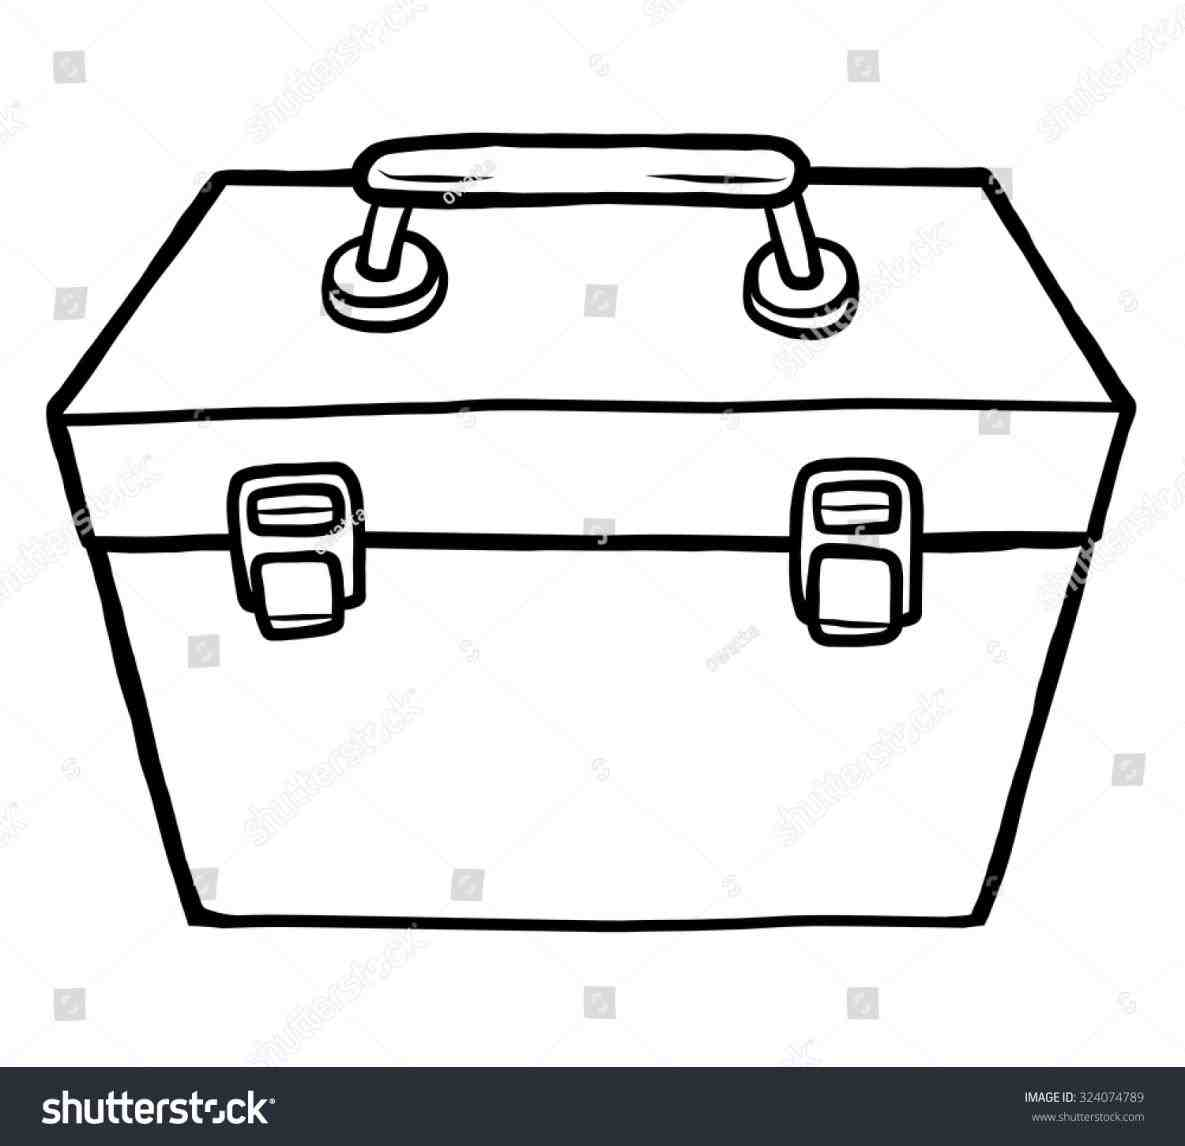 Boxes clipart black and white. The images collection of